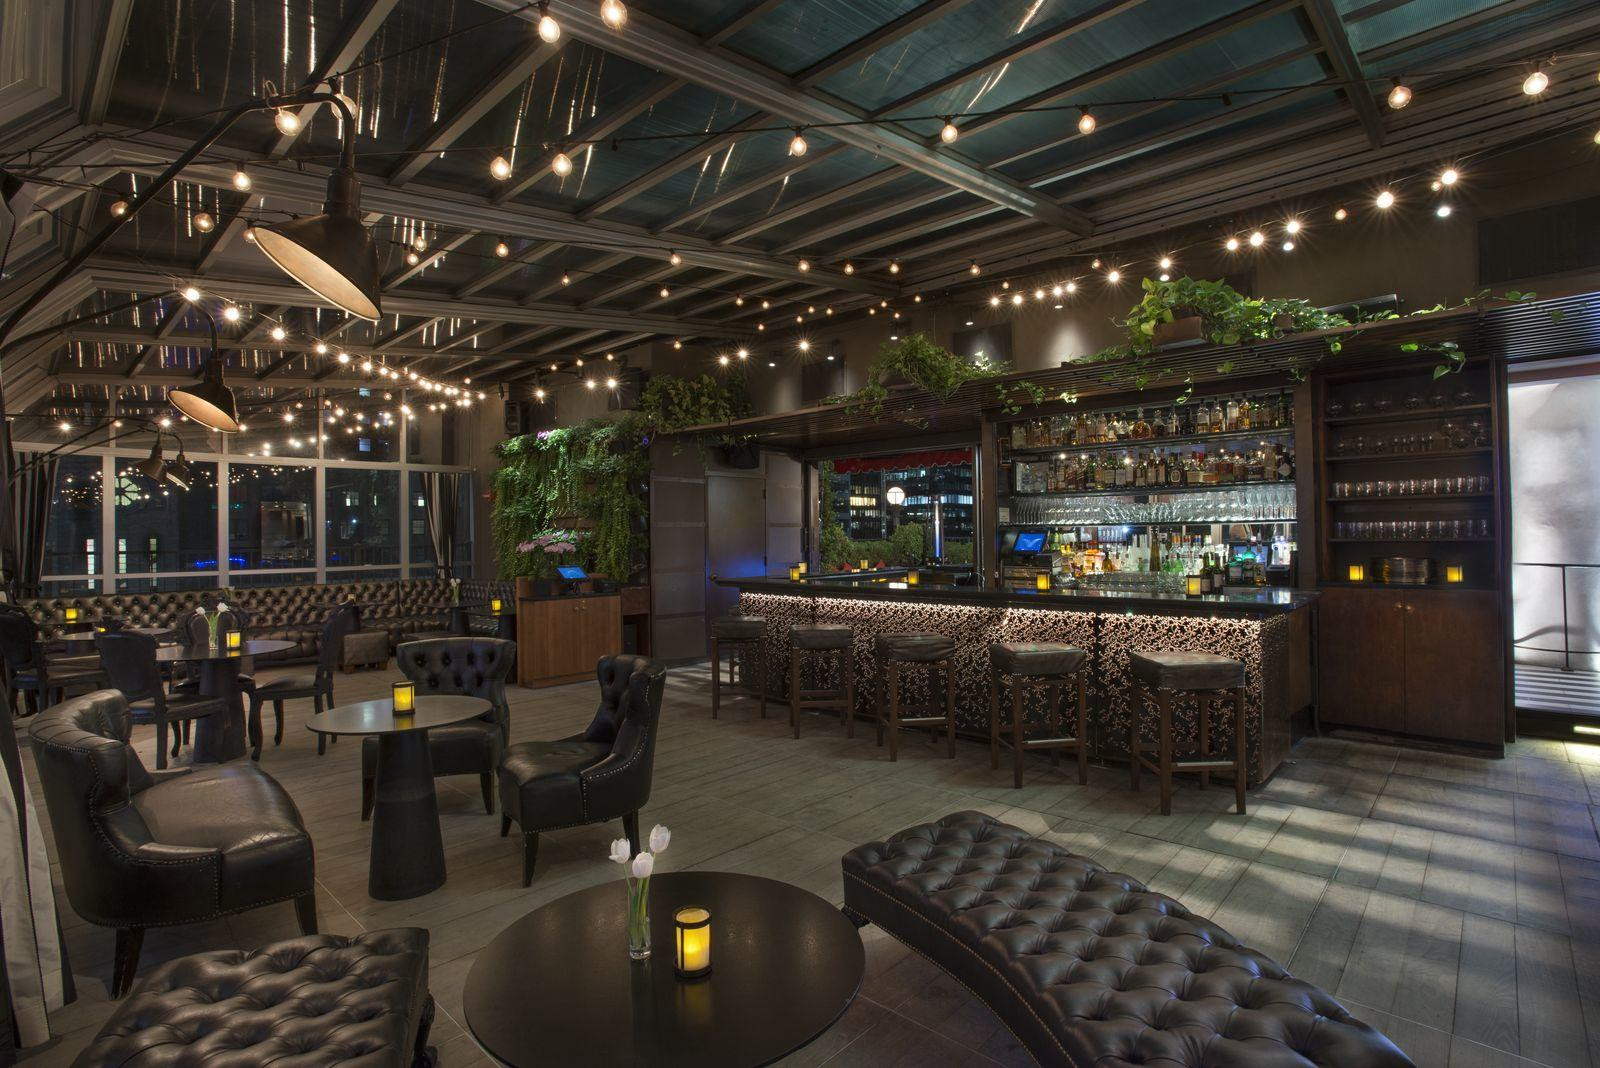 """Our clients receive exclusive VIP benefits at The Kimberly Hotel in Midtown New York City.  These benefits include full American breakfast on the rooftop lounge """"Upstairs"""" and upgrades to one bedroom suites (upon availability)."""